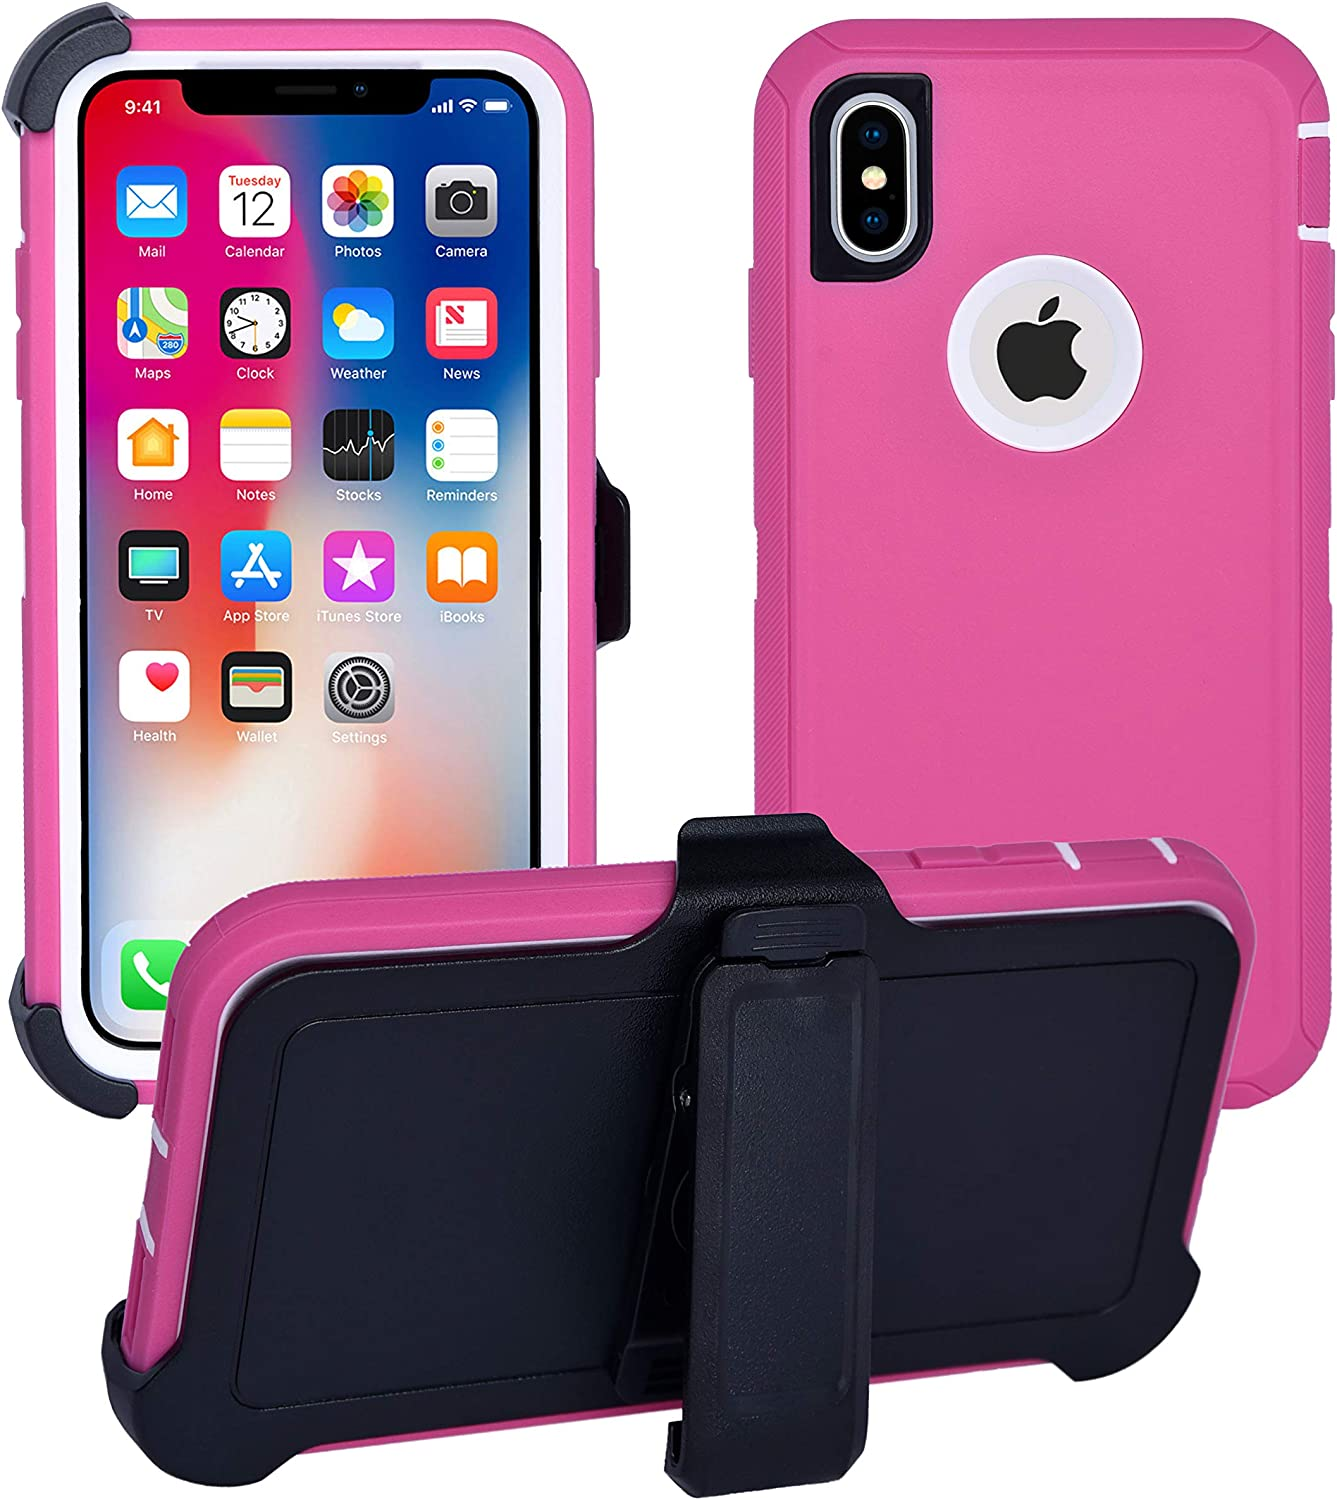 AlphaCell Cover Compatible with iPhone Xs/iPhone X | Holster Case Series | Military Grade Protection with Carrying Belt Clip | Protective Drop-Proof Shock-Proof | Pink/White